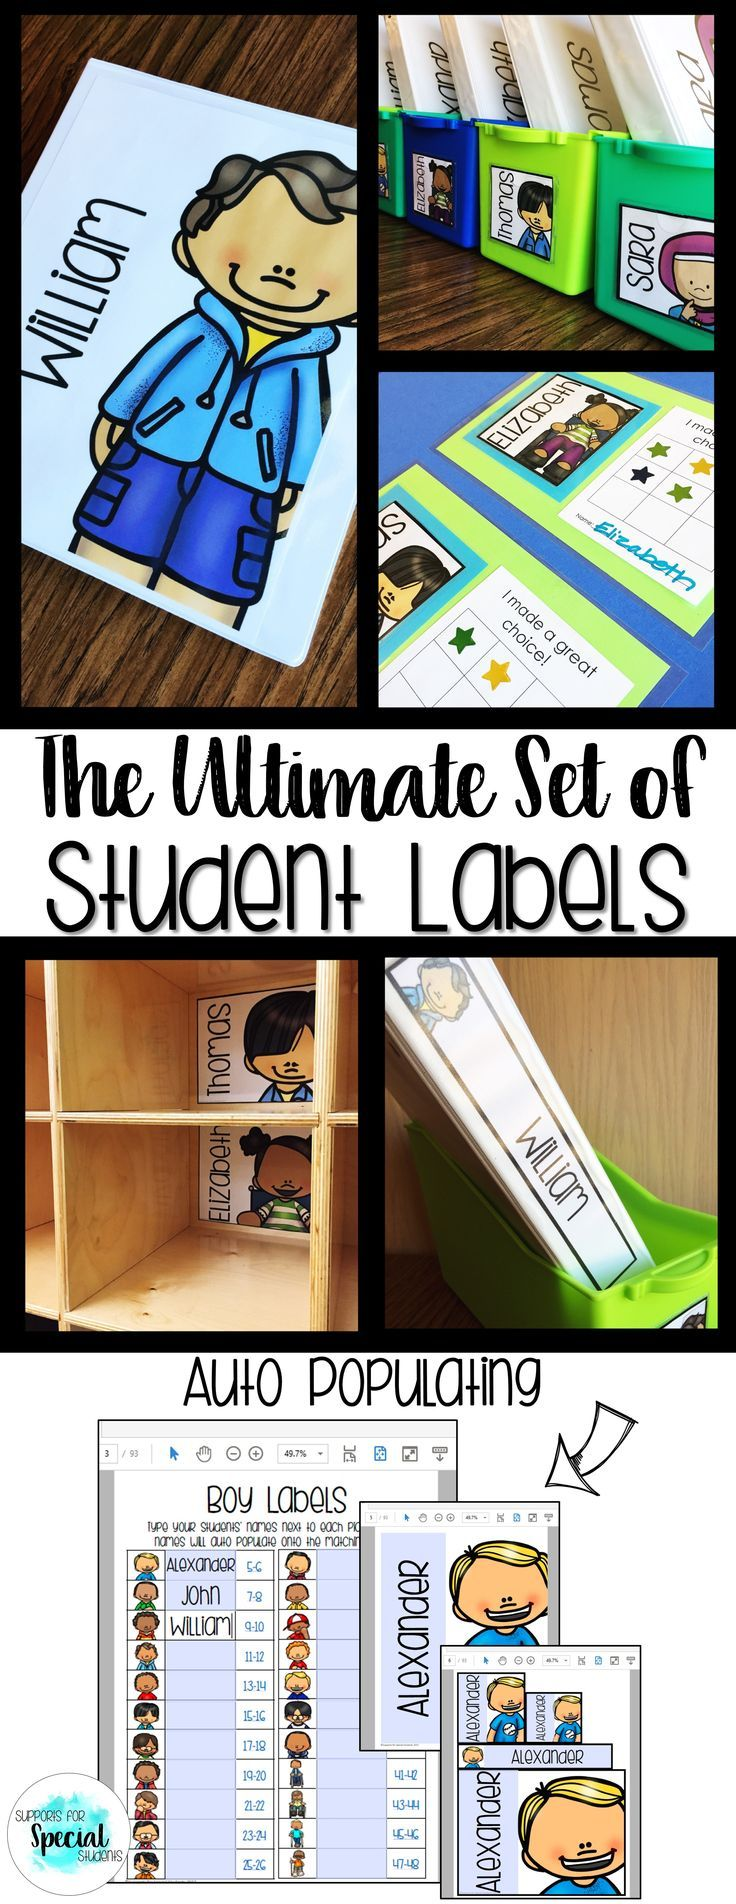 This huge bundle of editable student labels was created to save you time and energy! Type your students' names once and they will auto populate onto every label! There are 44 student pictures to choose from. The pictures include a wide range of races and